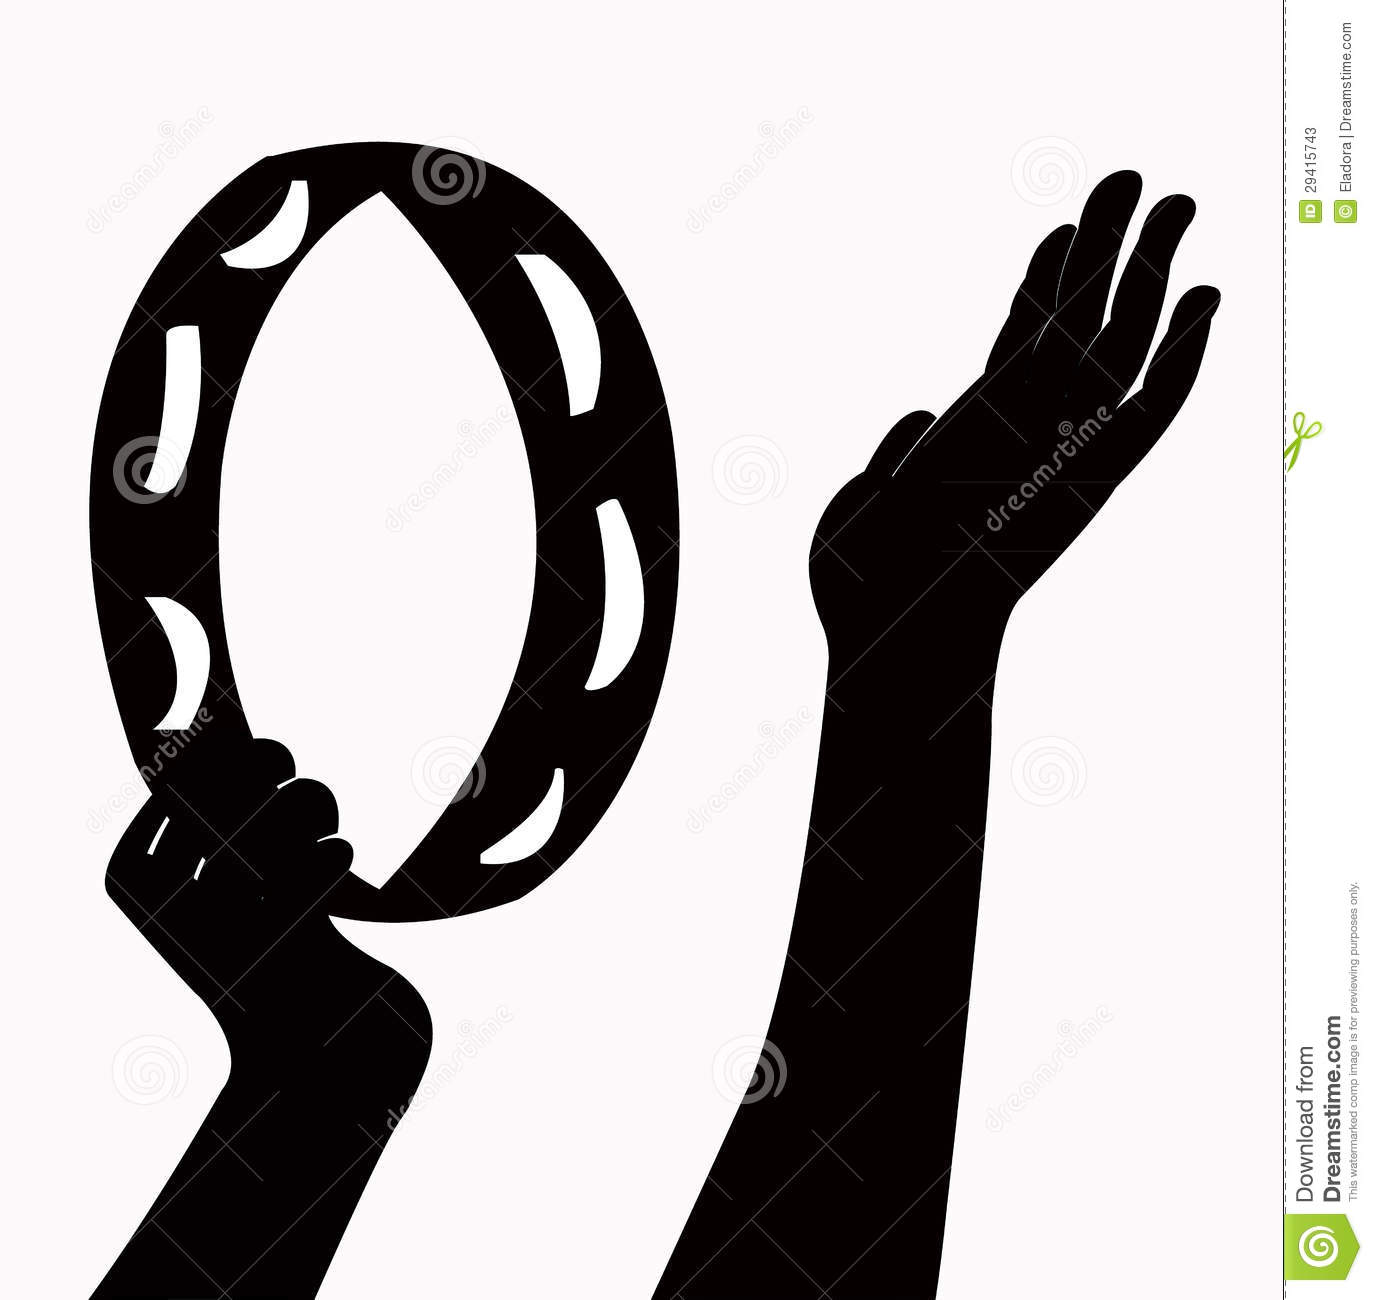 Hands Playing Tambourine Vector Stock Photos - Image: 29415743 White Drum Set Silhouette